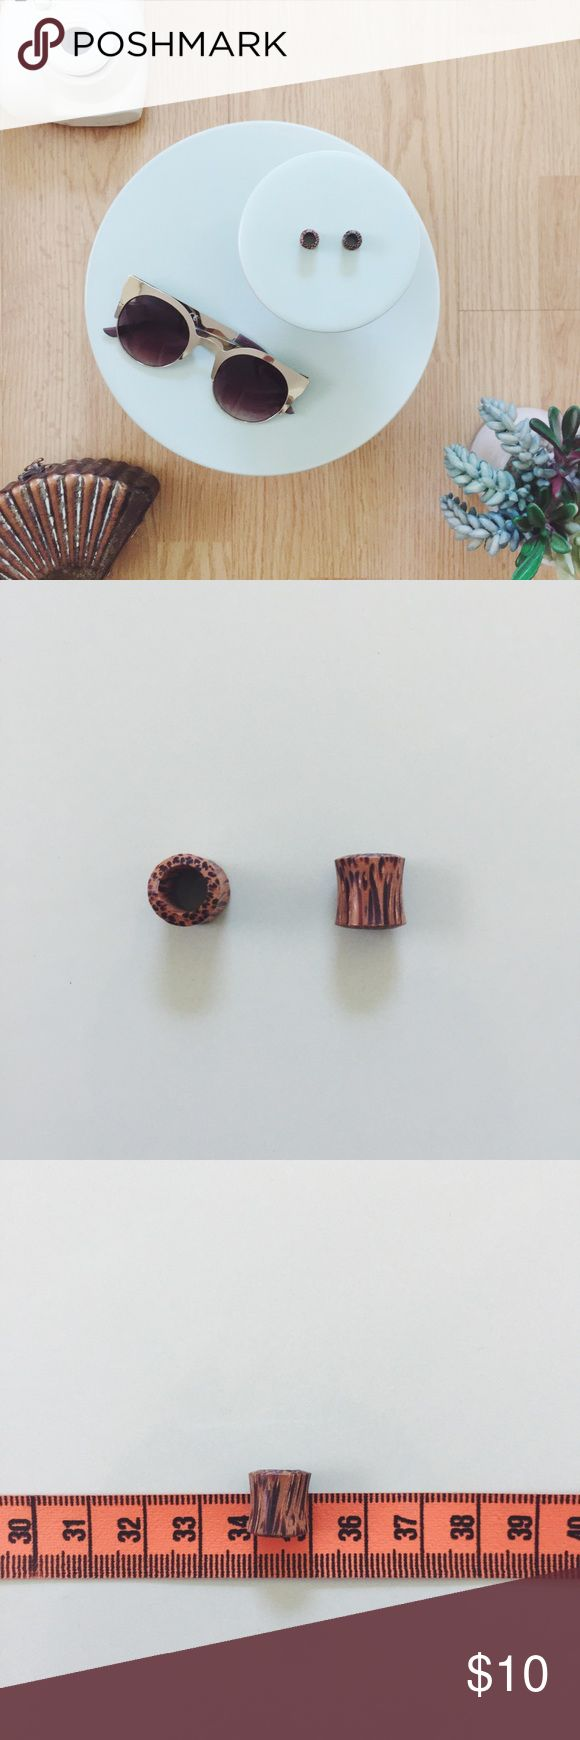 🆕 Organic Tiger Wood Tunnel Plugs 🆕 Organic Tiger Wood Tunnel Plugs. Fits 0g or 8mm stretched ears, see sizing chart for additional information. No longer my gauge so unable to wear. Perfectly lightweight! Never worn. Jewelry Earrings